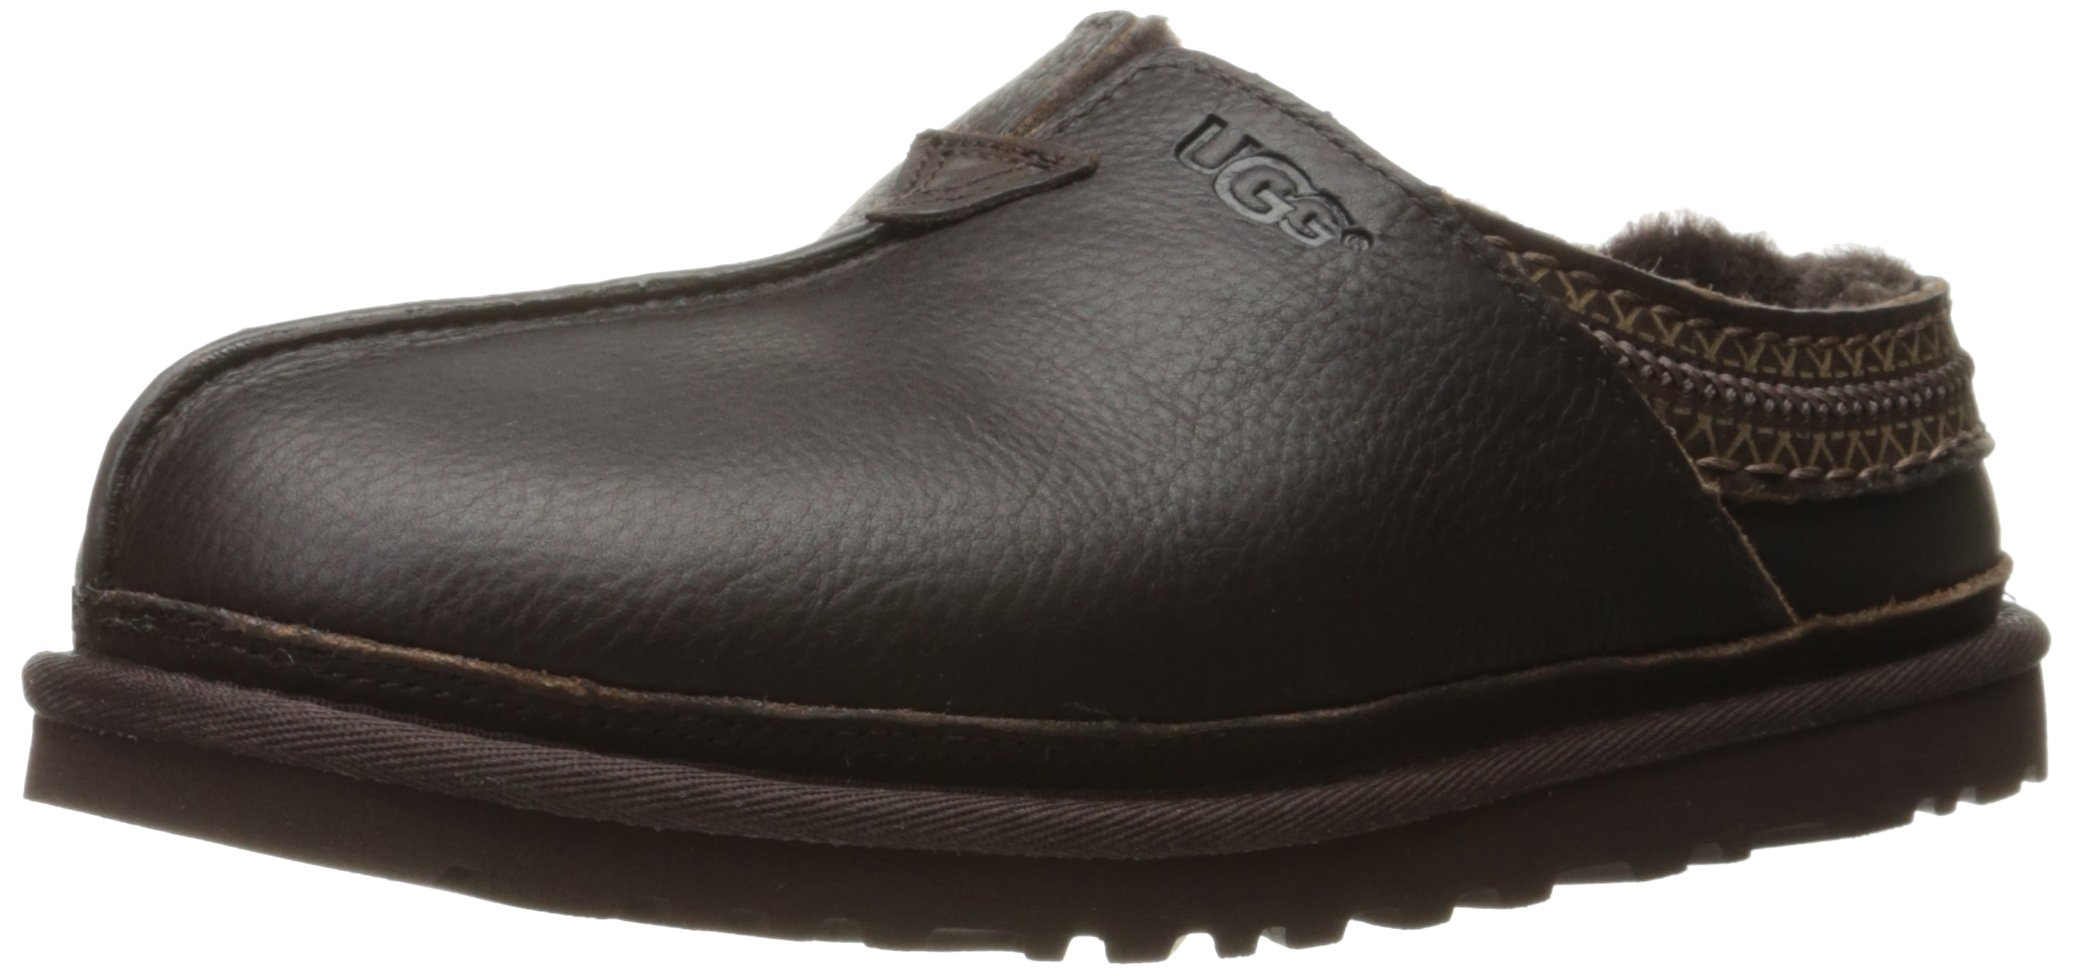 UGG Men's Neuman Clog, China Tea, 8 M US